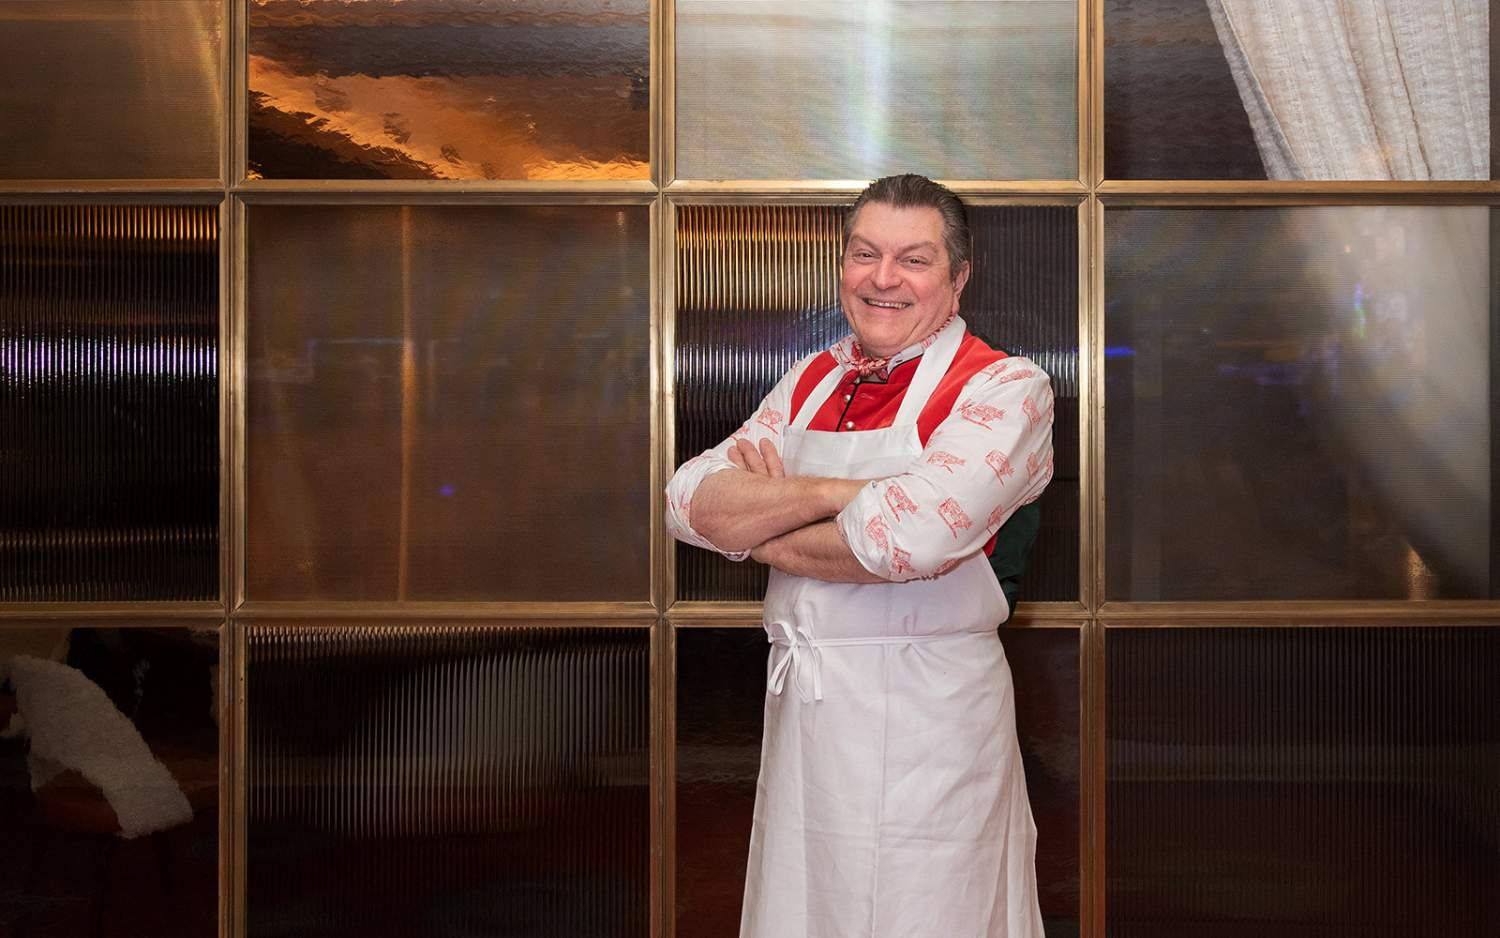 Dario Cecchini from Carna restaurant in Nassau